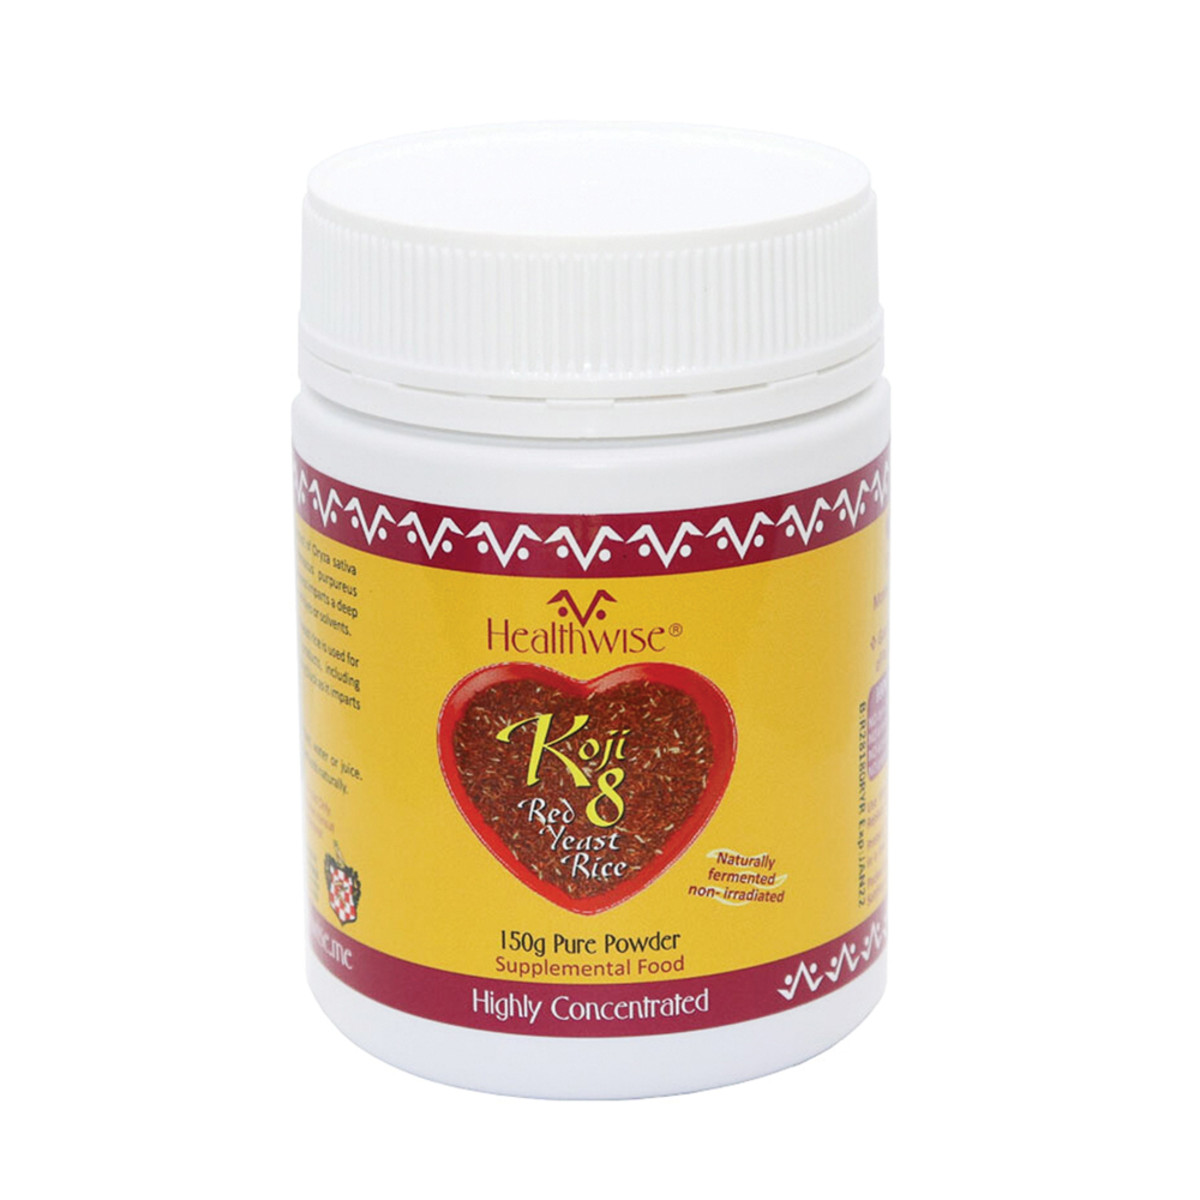 HEALTHWISE KOJI 8 RED RICE YEAST 150GM